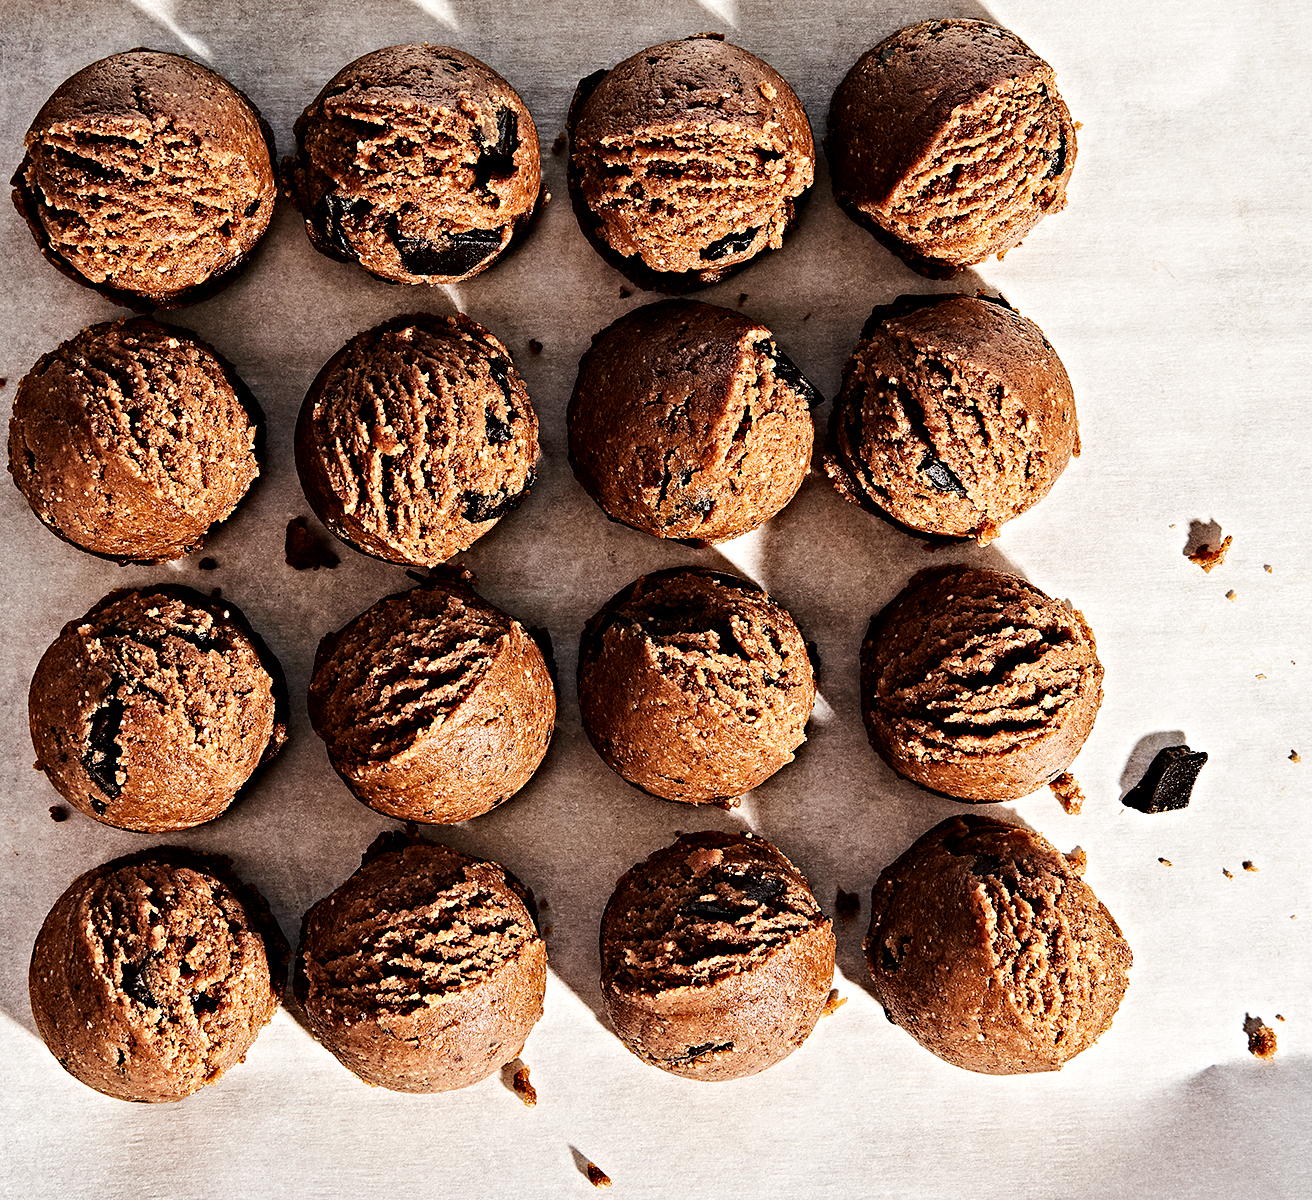 Overhead view of almond butter tahini grain-free chocolate chip cookie dough balls.